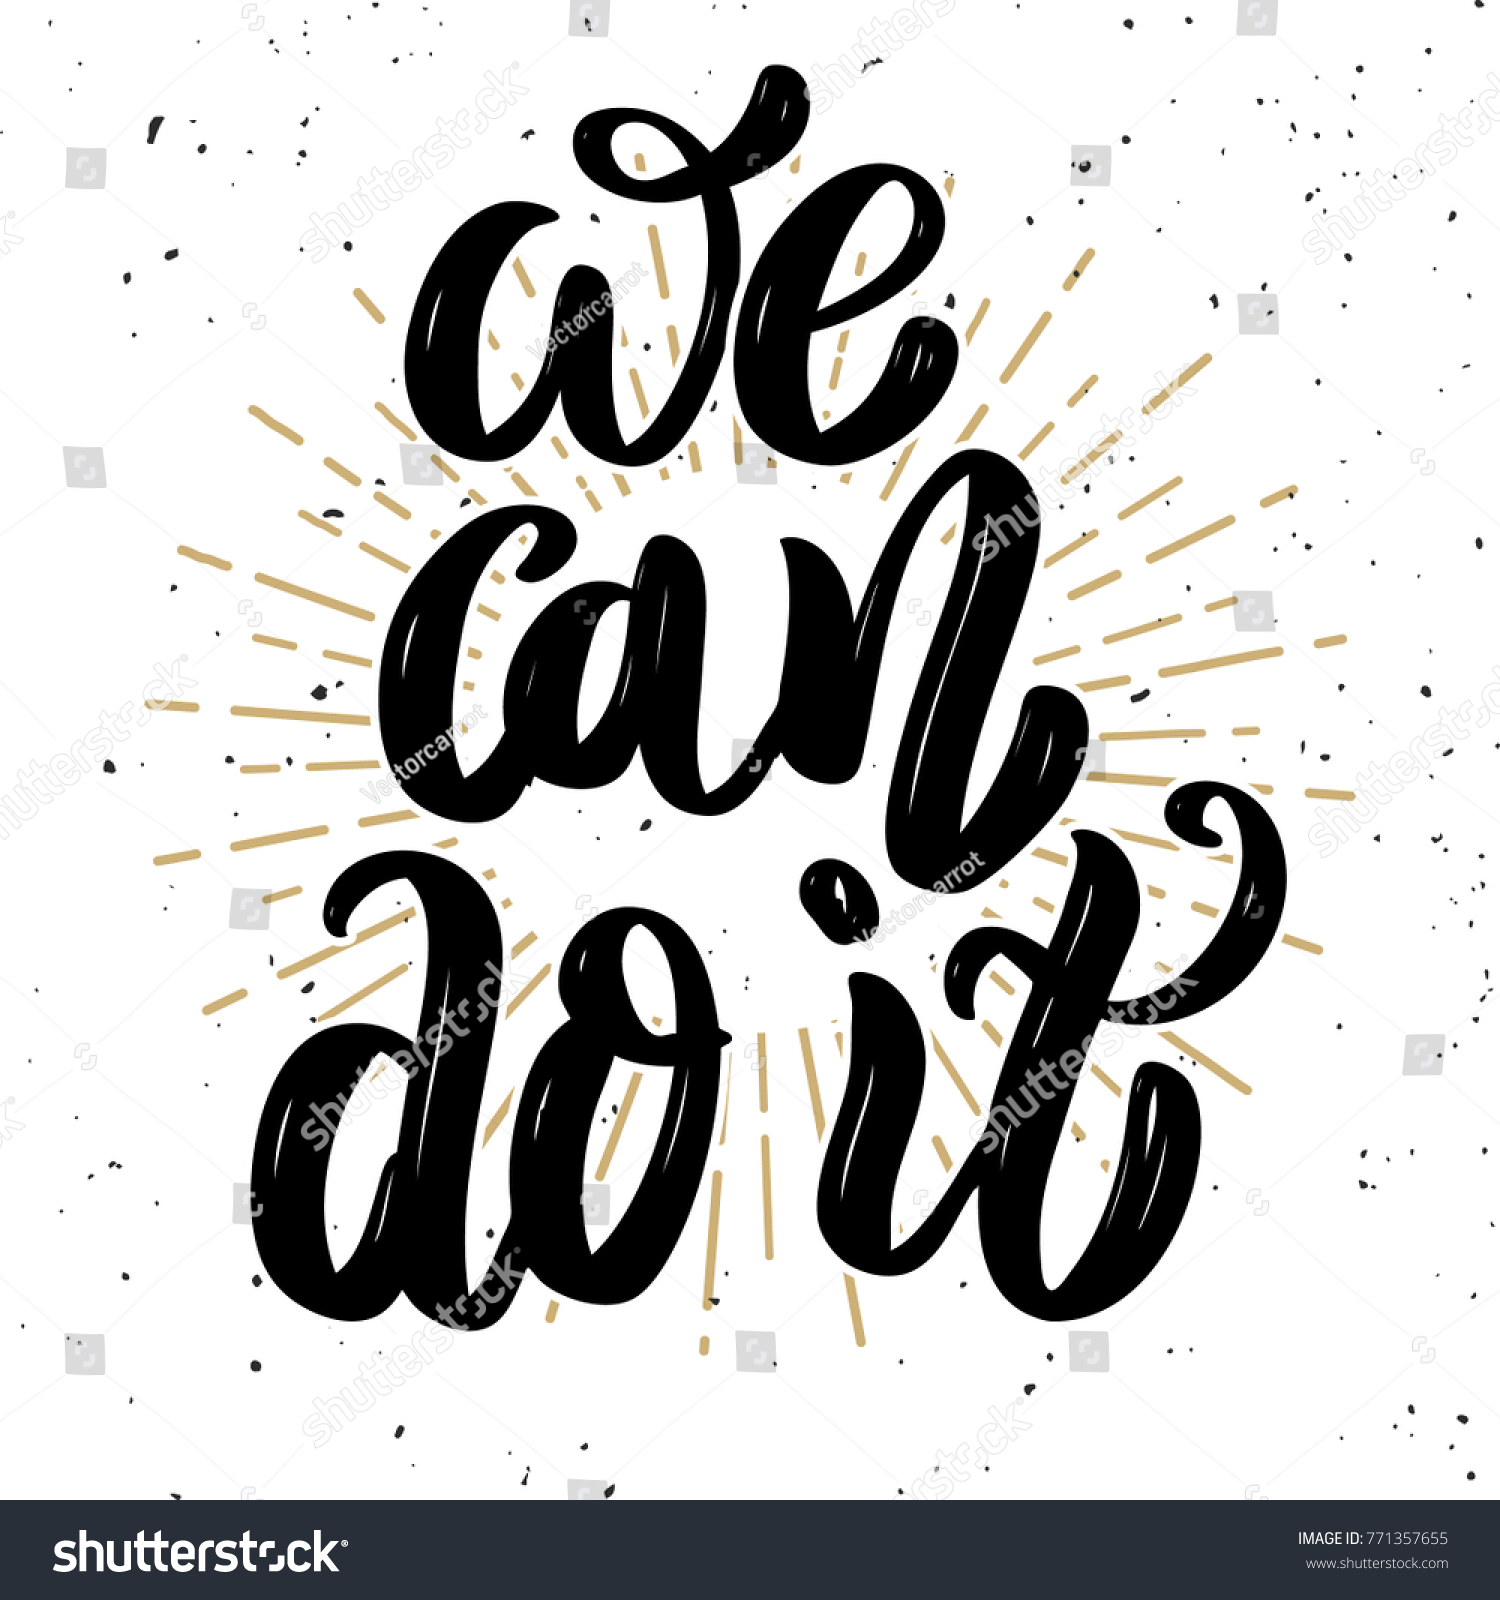 We Can Do It Hand Drawn Stock Illustration Royalty Free Stock